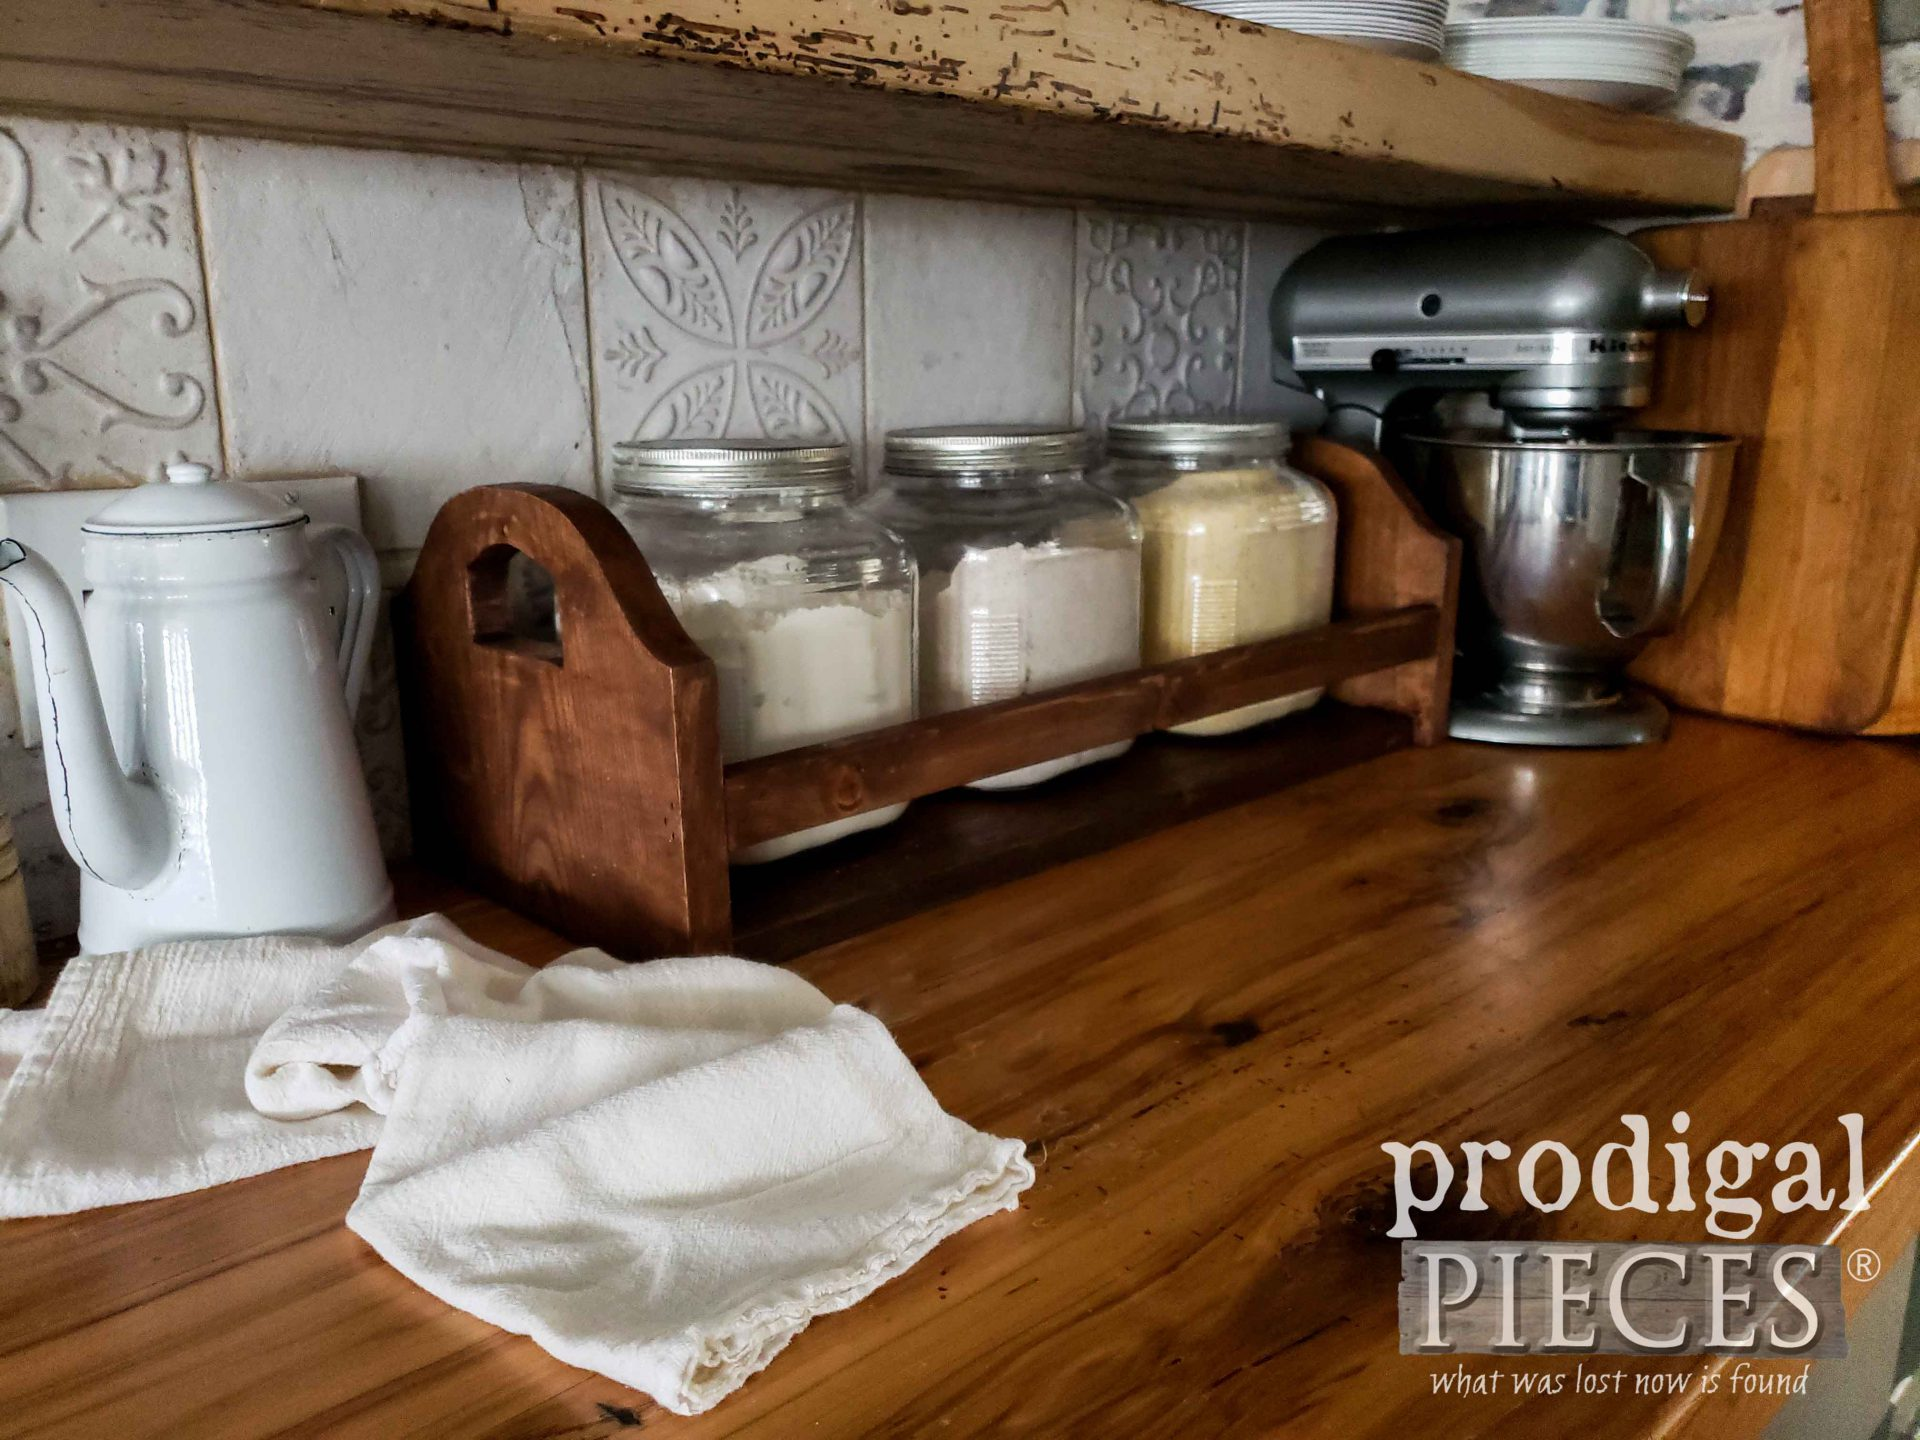 Rustic Farmhouse Kitchen Crate for Extra Storage and Style by Larissa of Prodigal Pieces | prodigalpieces.com #prodigalpieces #diy #home #farmhouse #kitchen #homedecor #storage